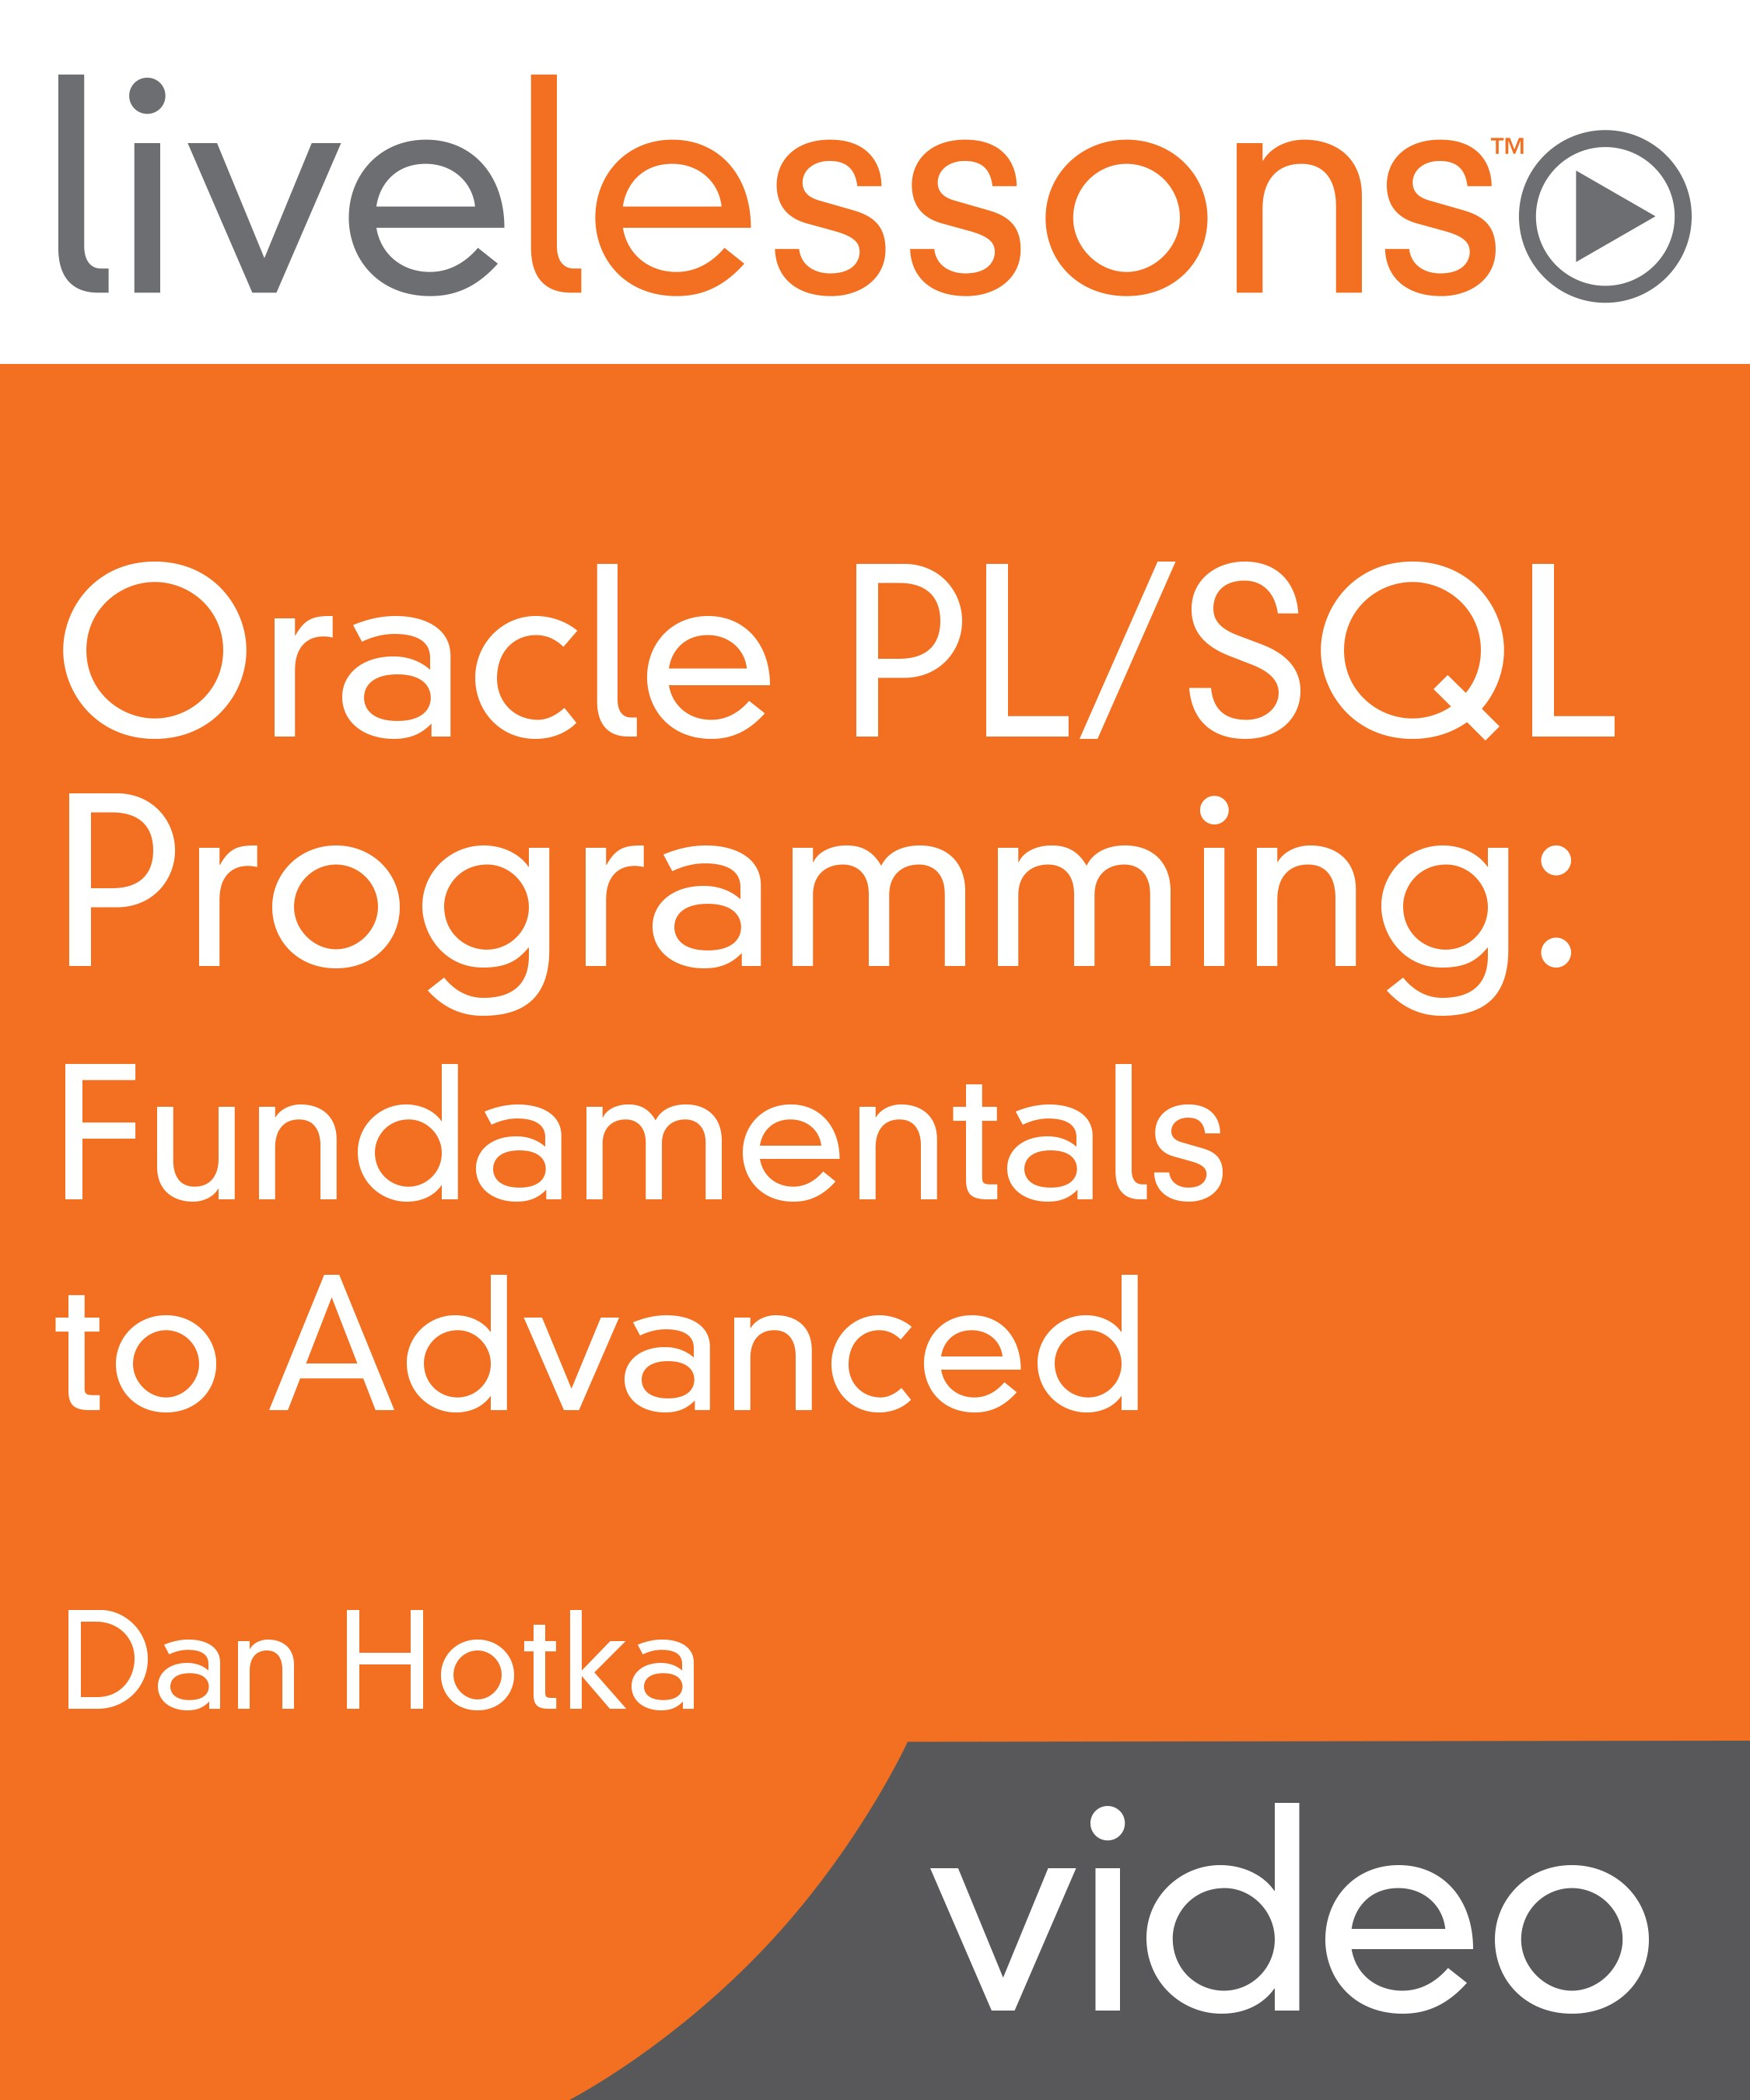 Oracle PL/SQL Programming: Fundamentals to Advanced LiveLessons (Video Training)